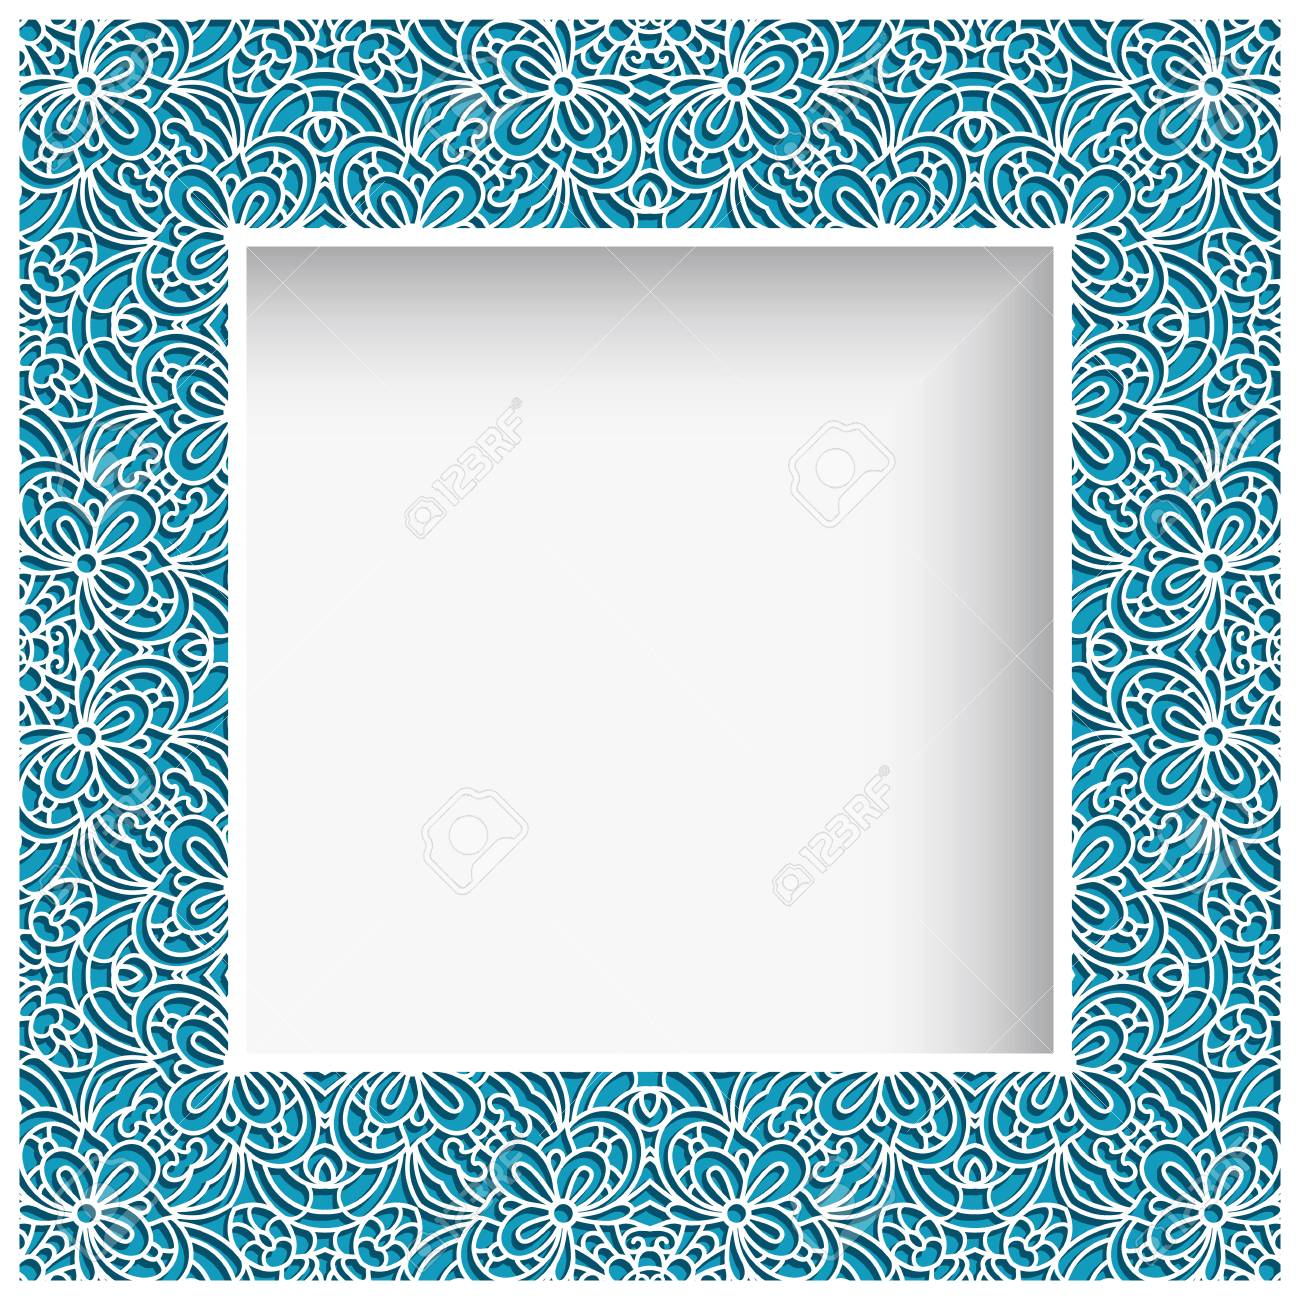 Square Photo Frame With Lace Border Pattern, Swirly Ornament ...